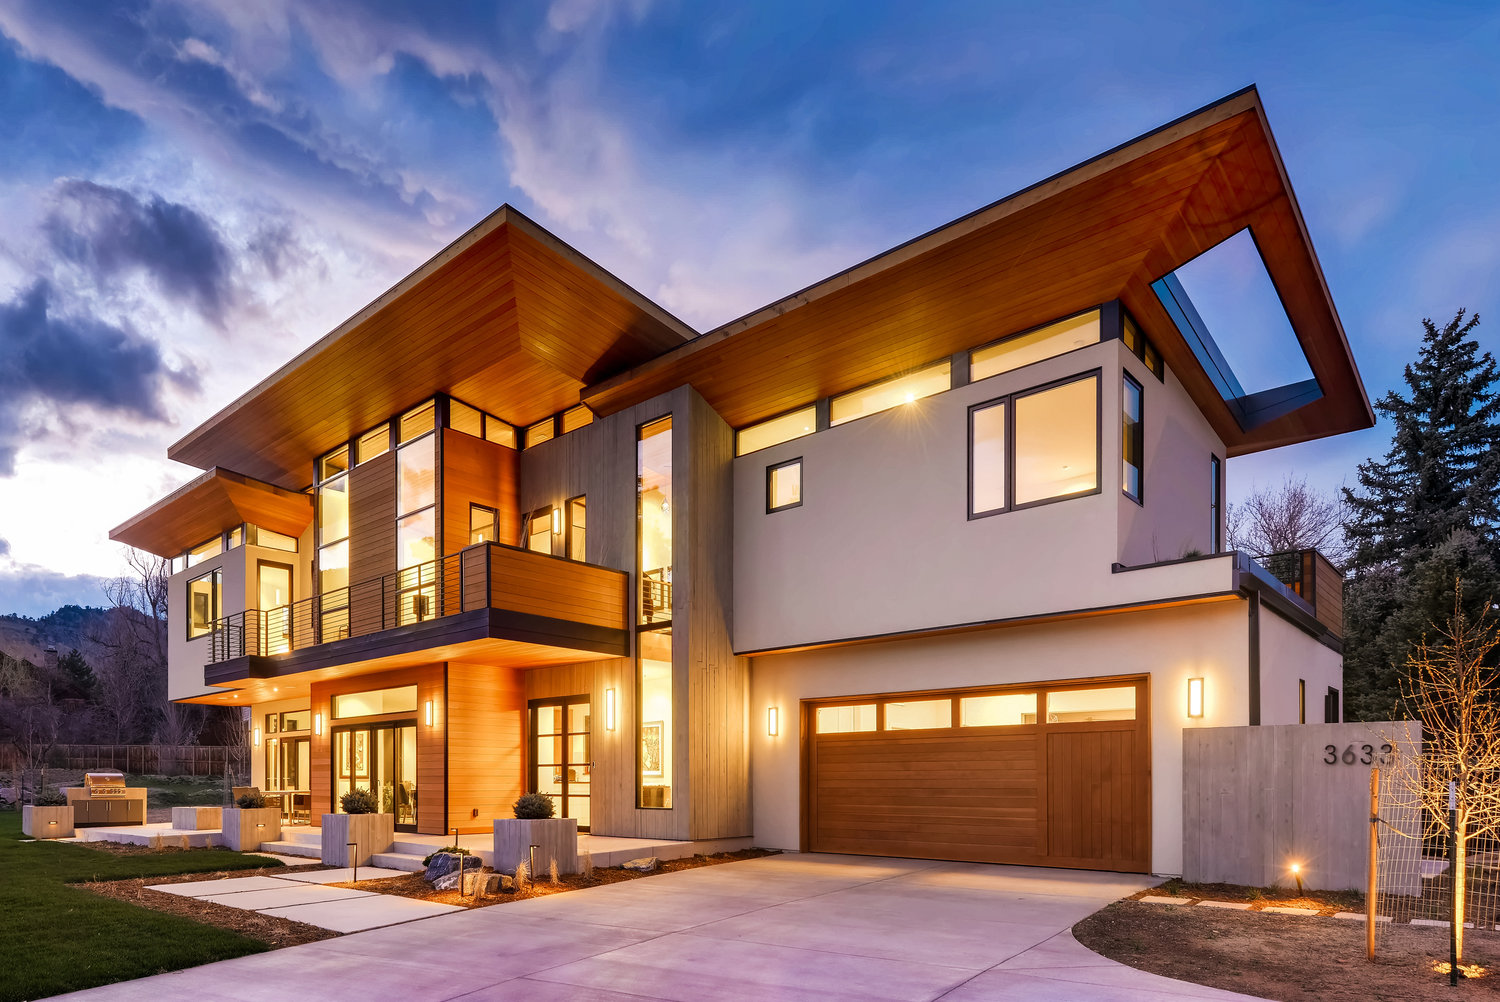 Colorado's Top Rated Local® Architects Award Winner: Rodwin Architecture